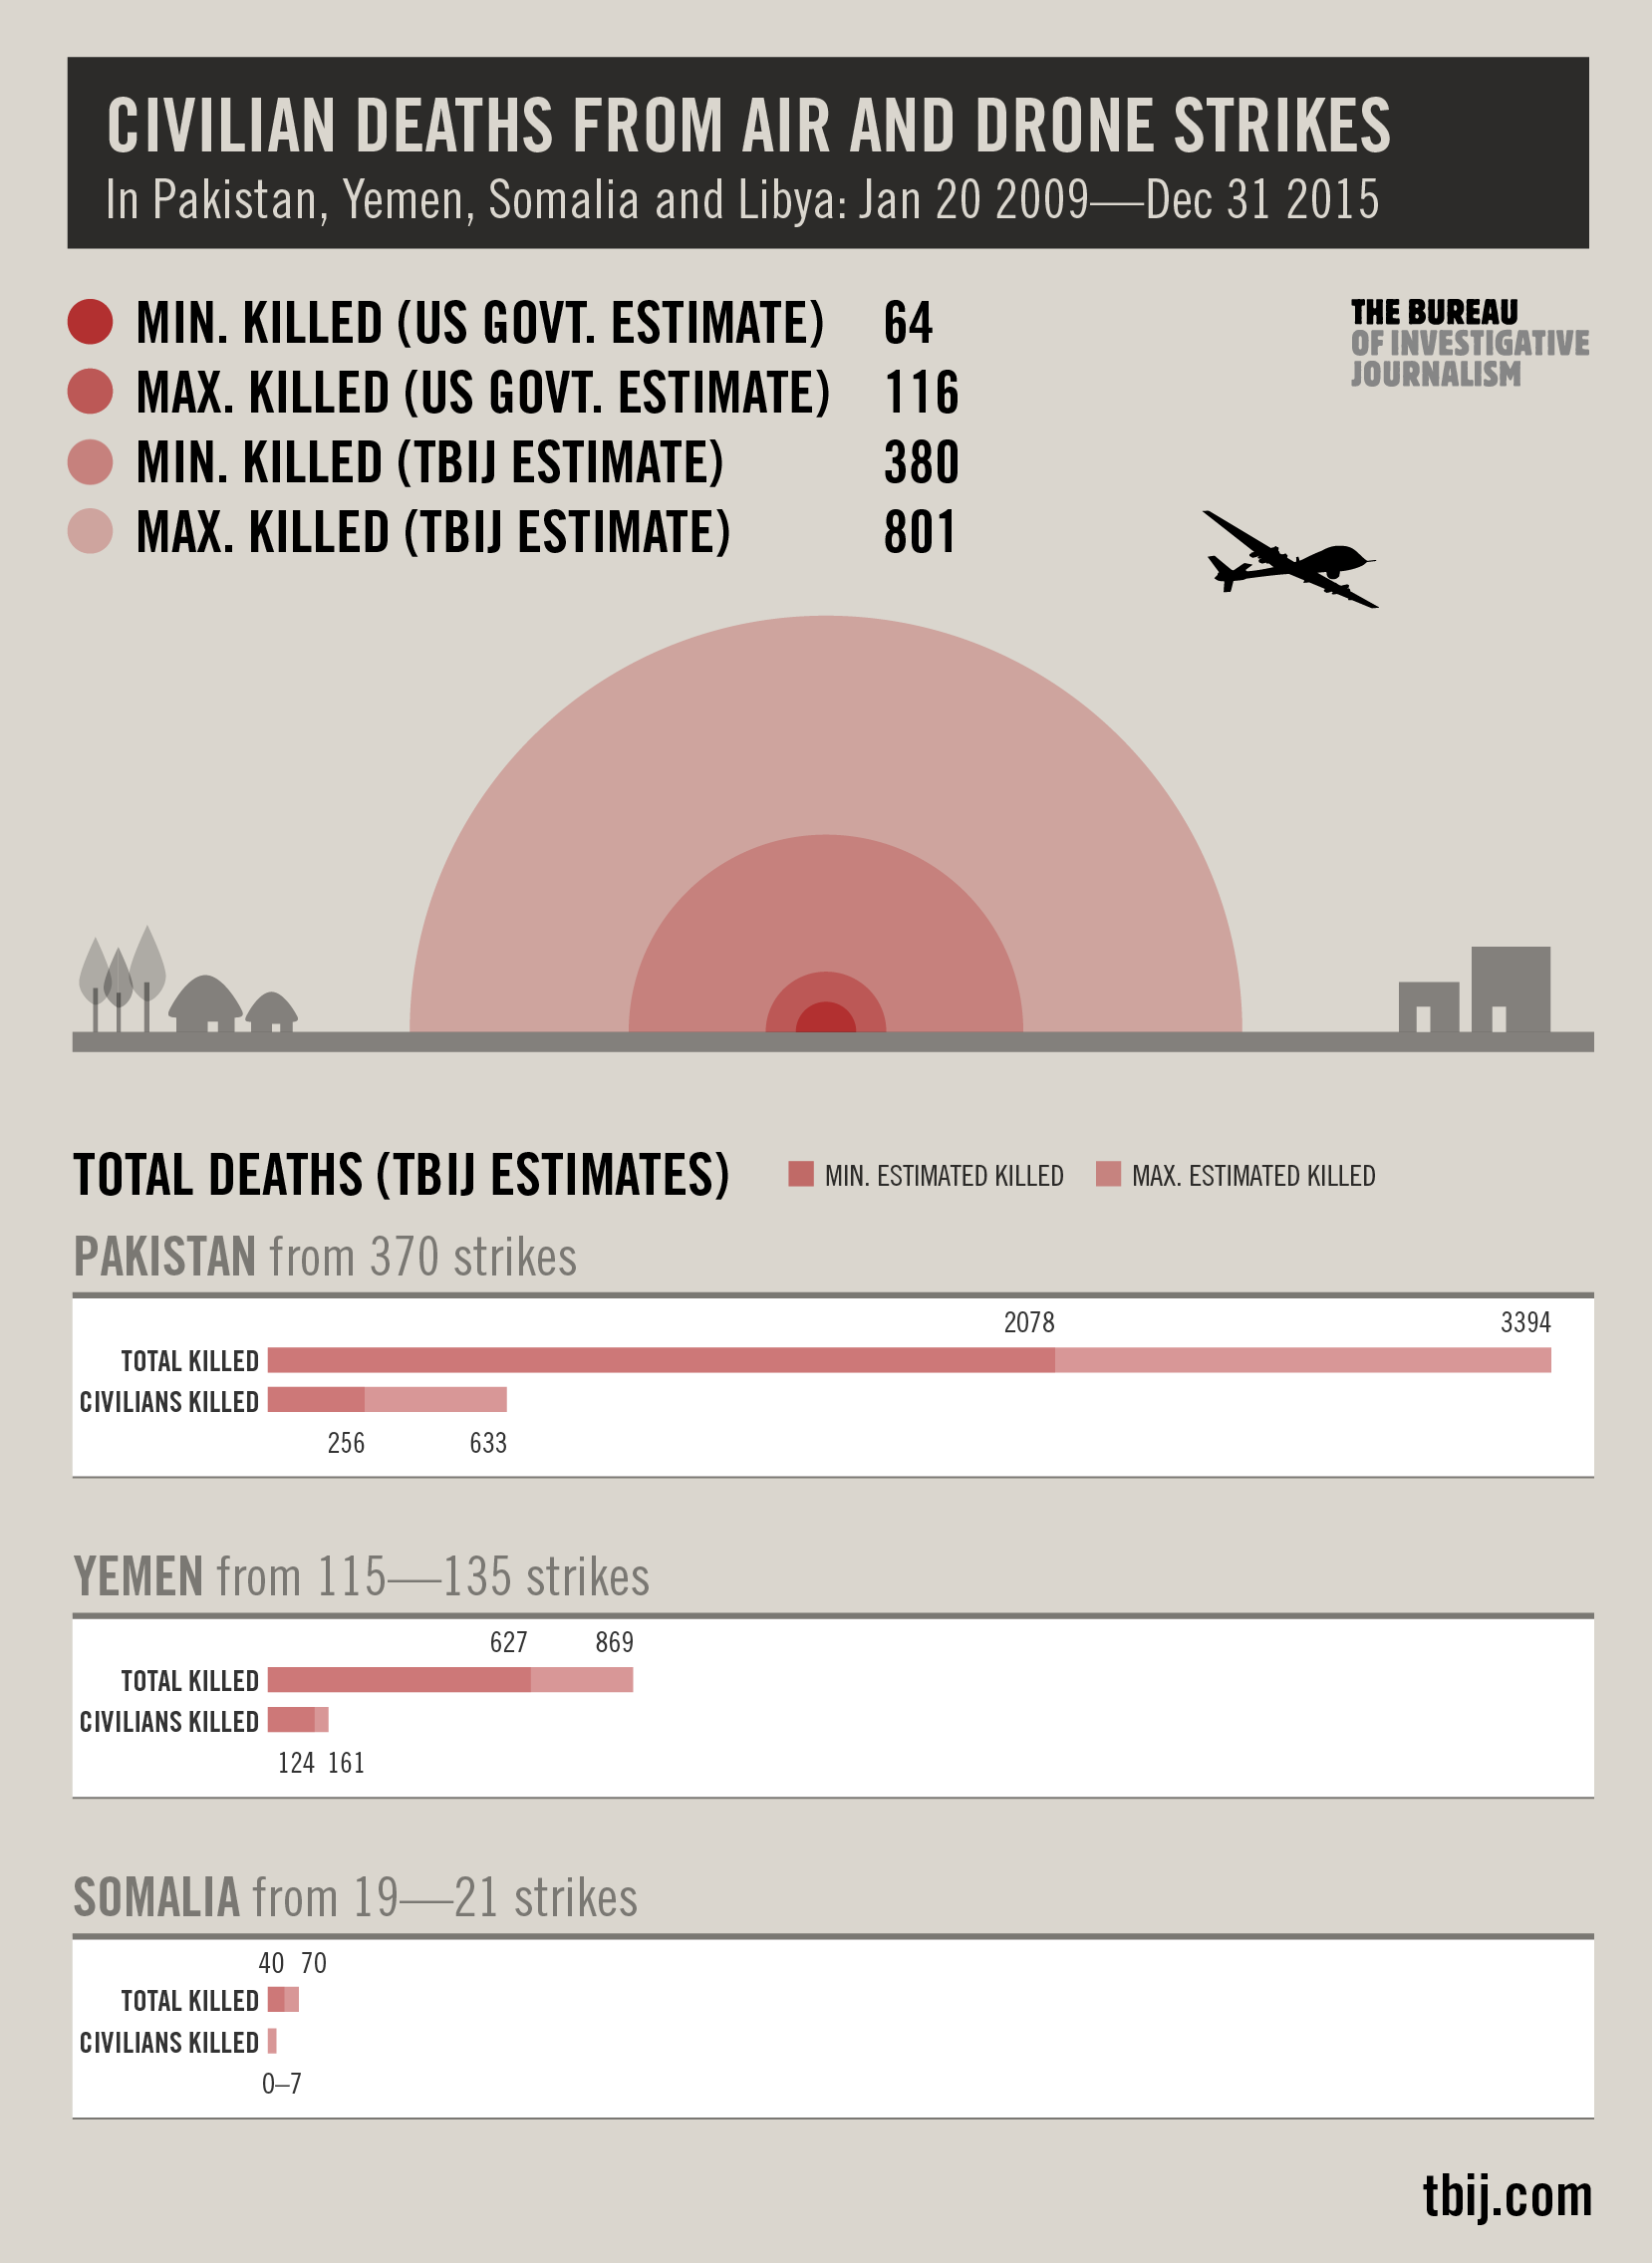 Civilian deaths from air and drones strikes in Pakistan, Yemen, Somalia and Libya - January 20 2009 to December 31 2015